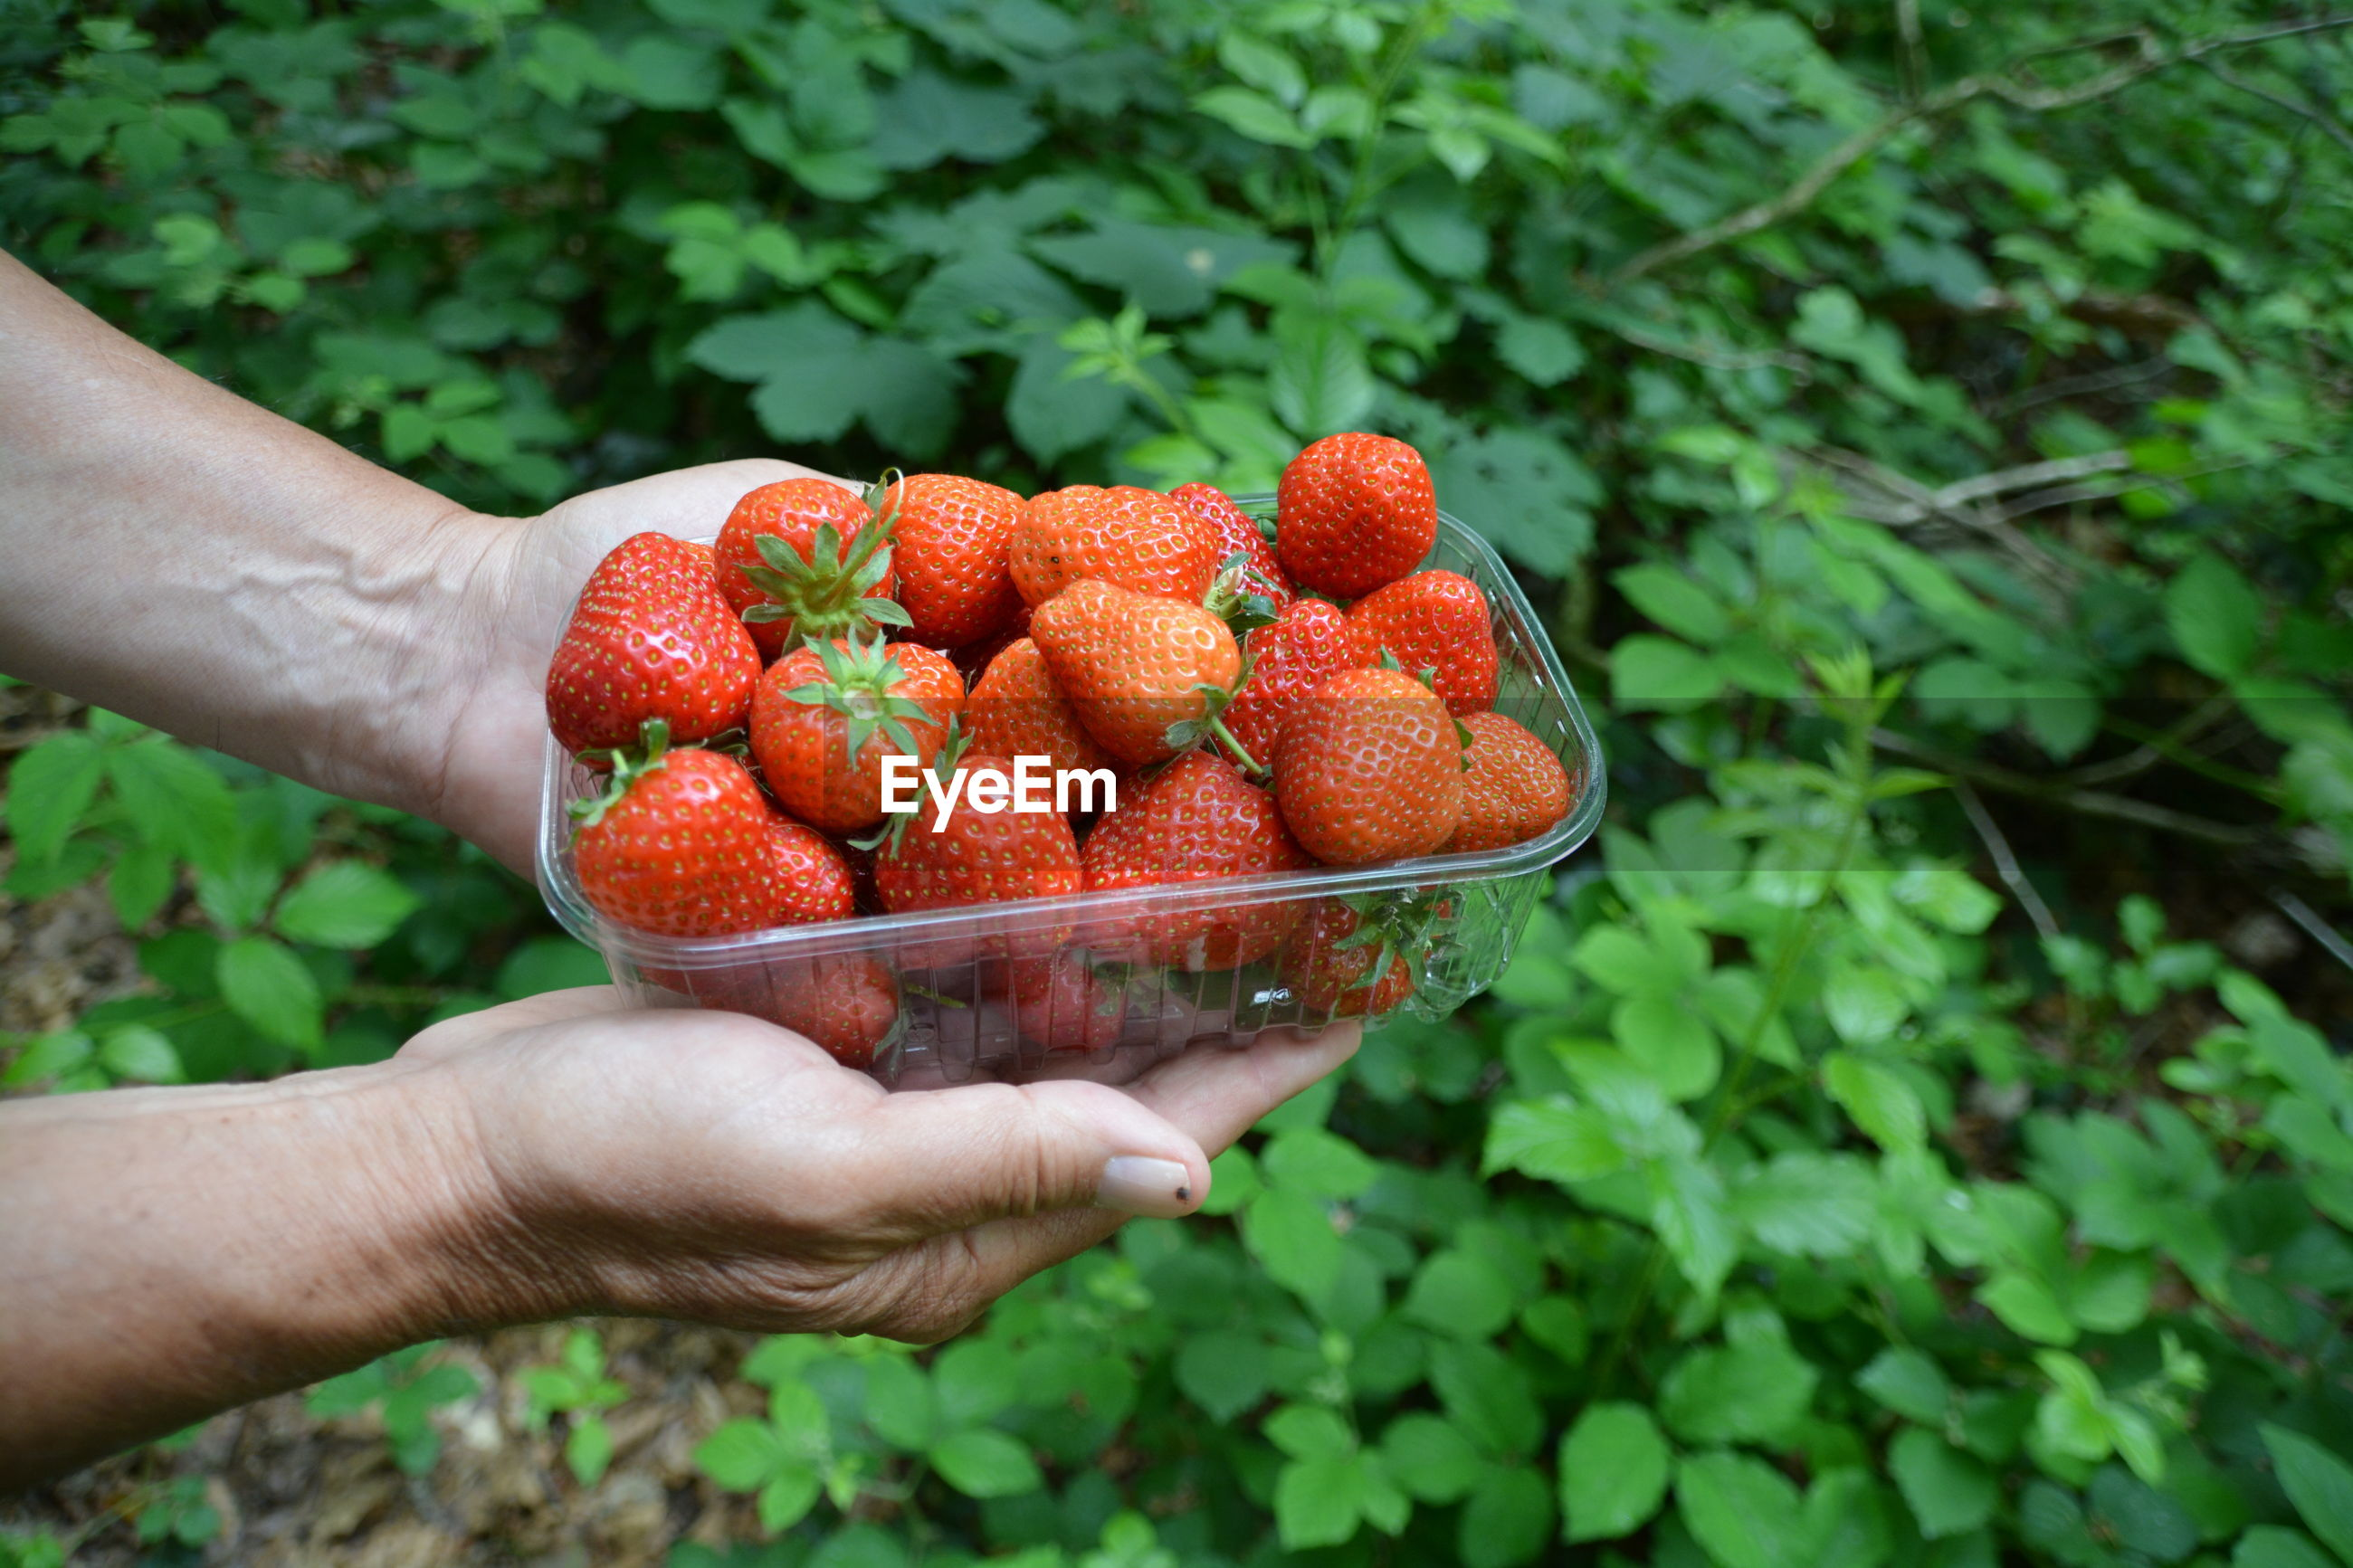 Cropped hands holding strawberries in container